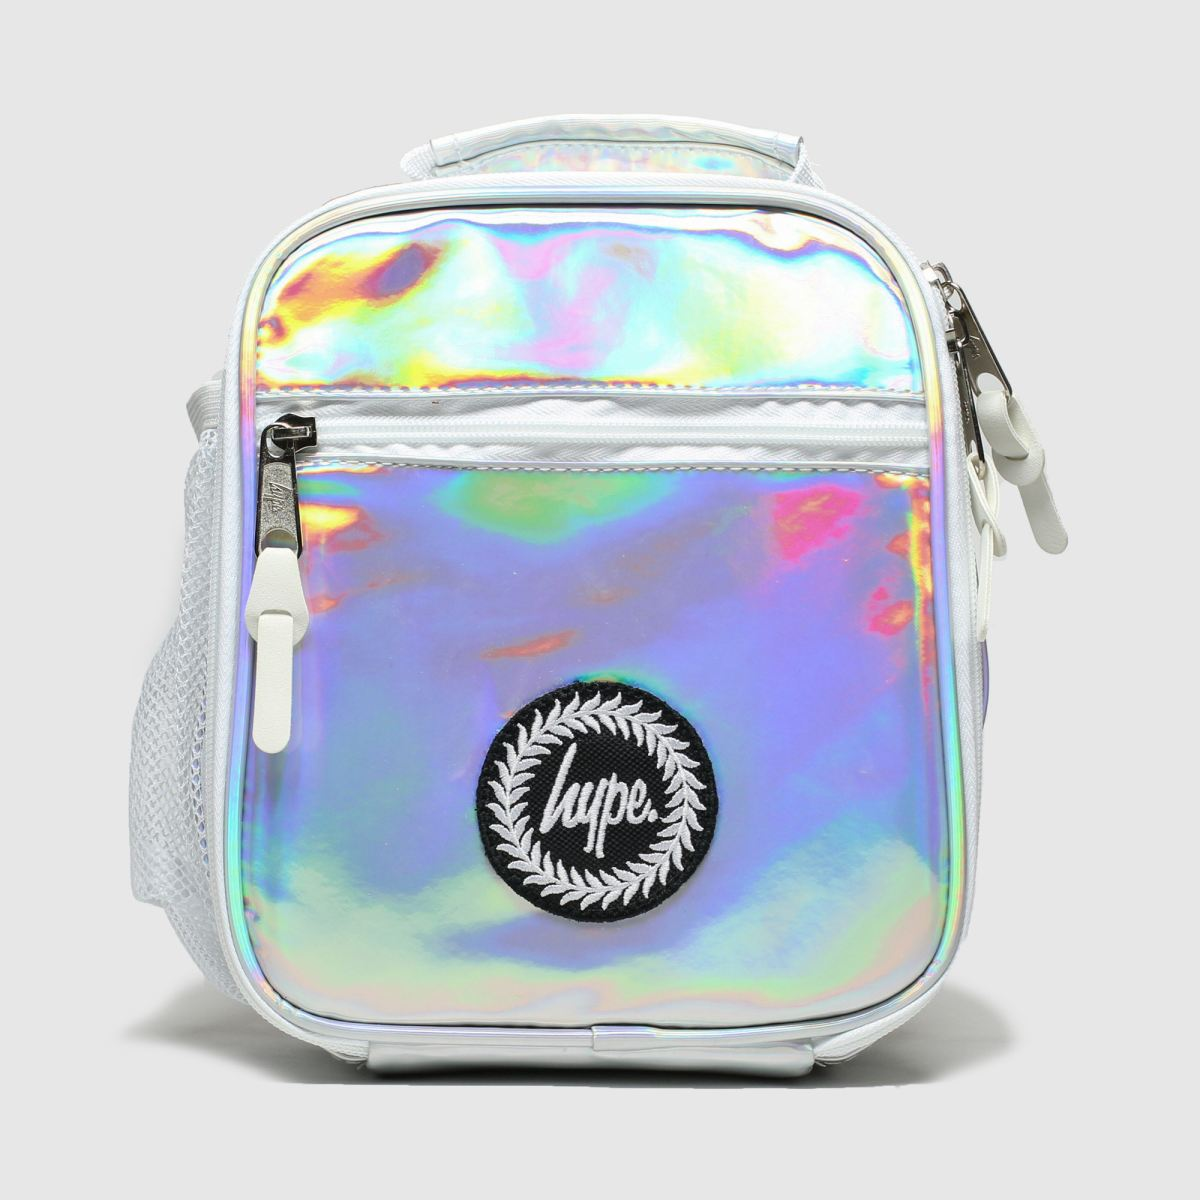 Accessories Hype White & Silver Lunch Bag